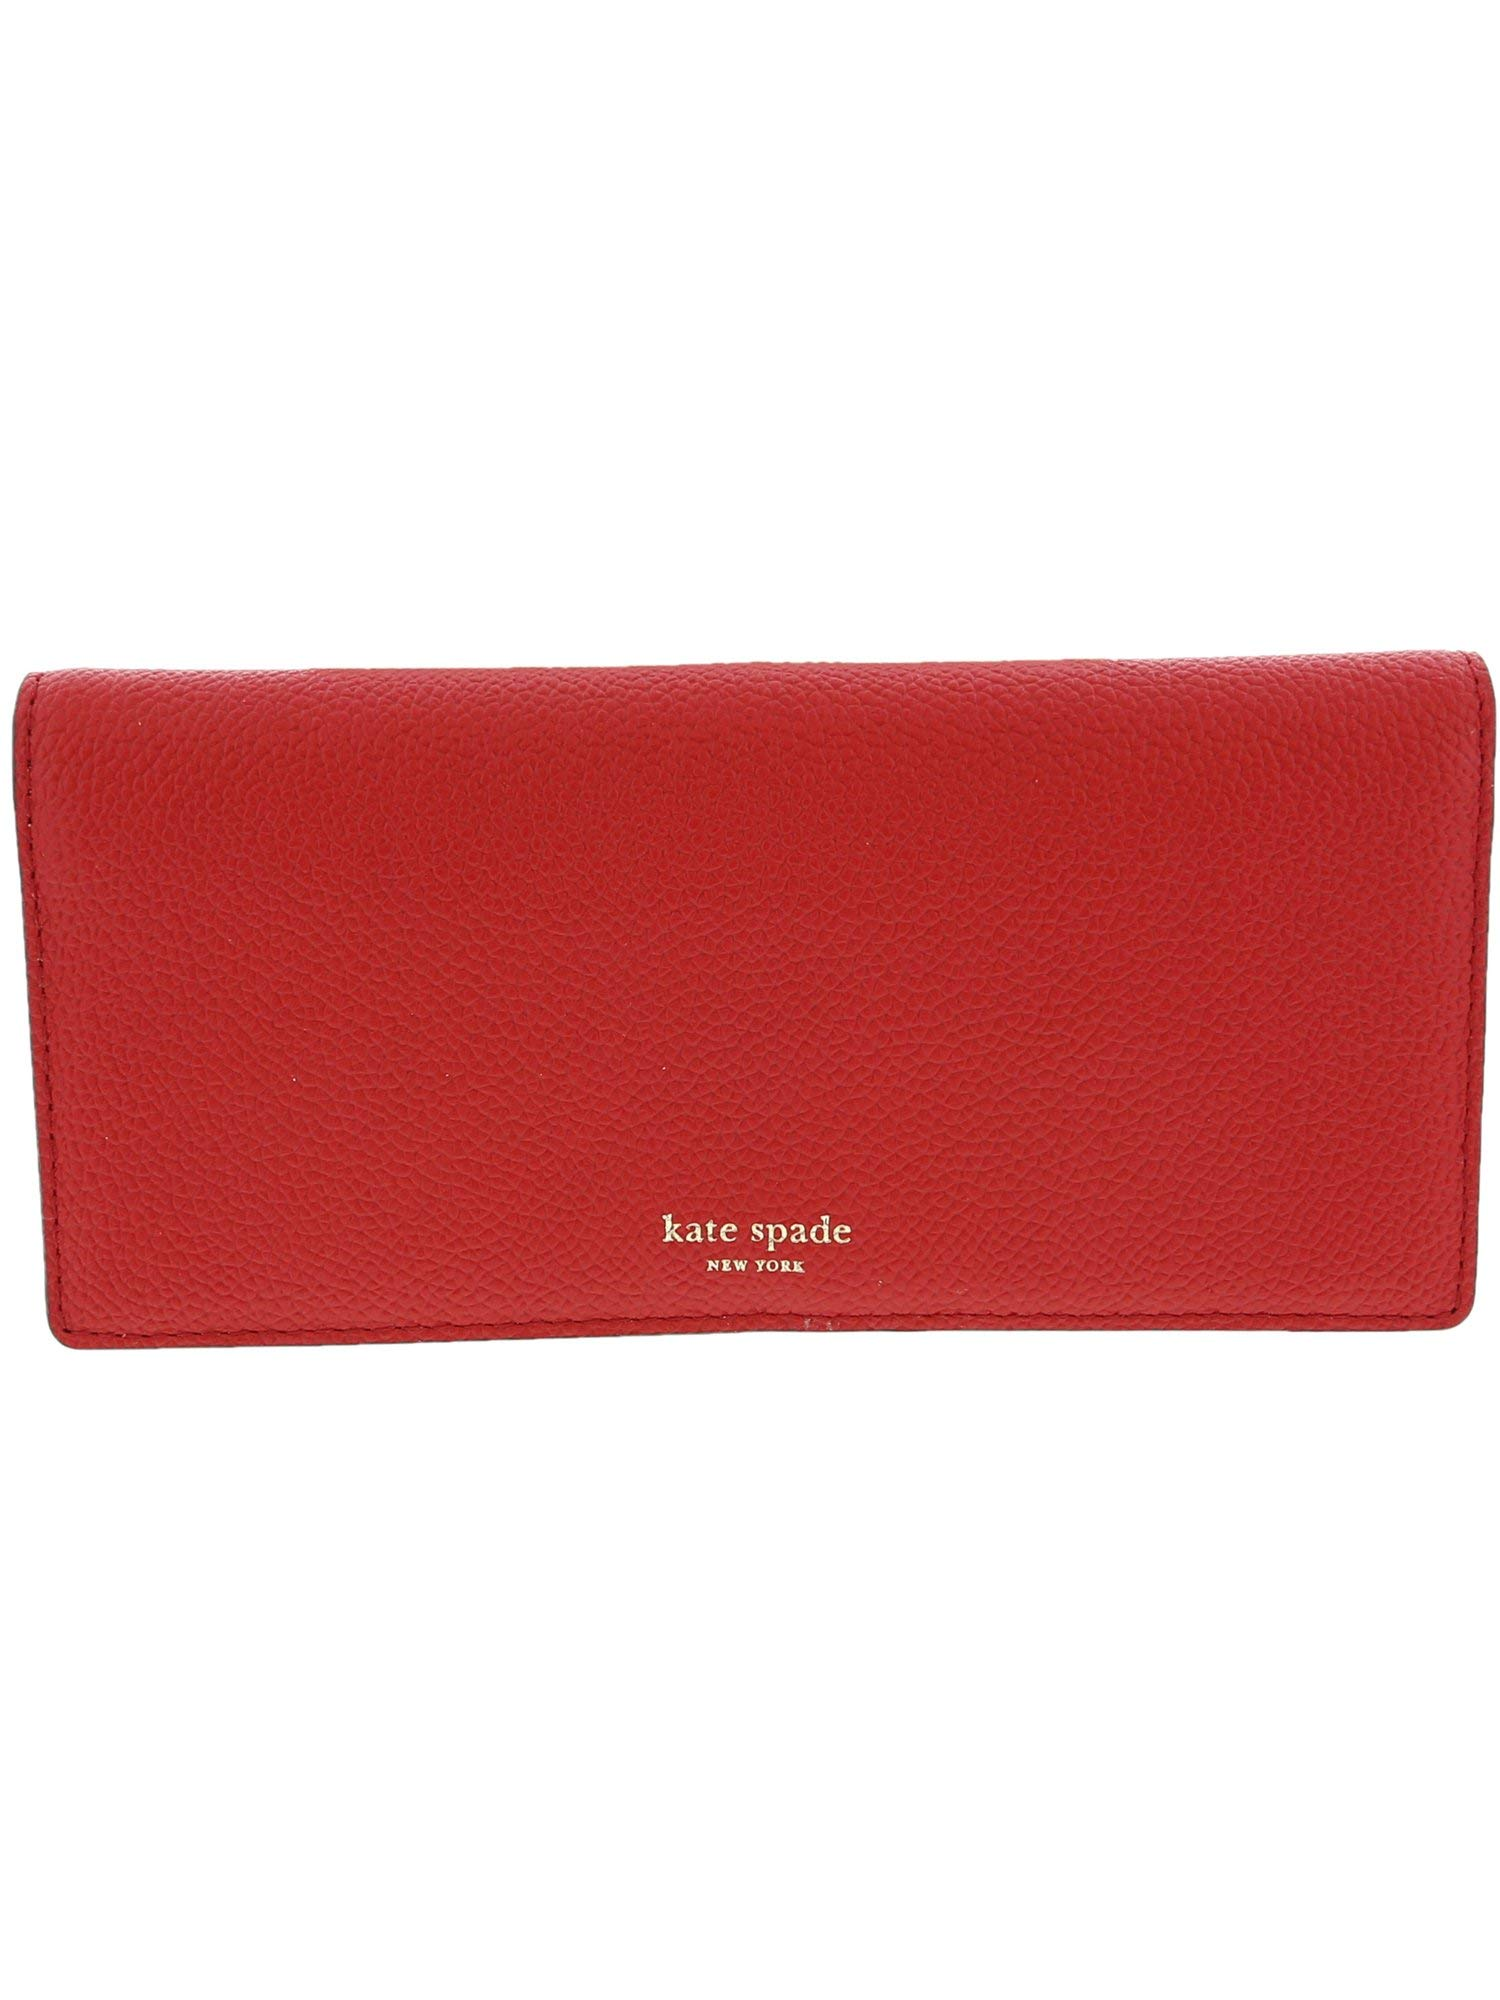 Kate Spade New York Women's Margaux Bifold Continental Wallet Hot Chili One Size by Kate Spade New York